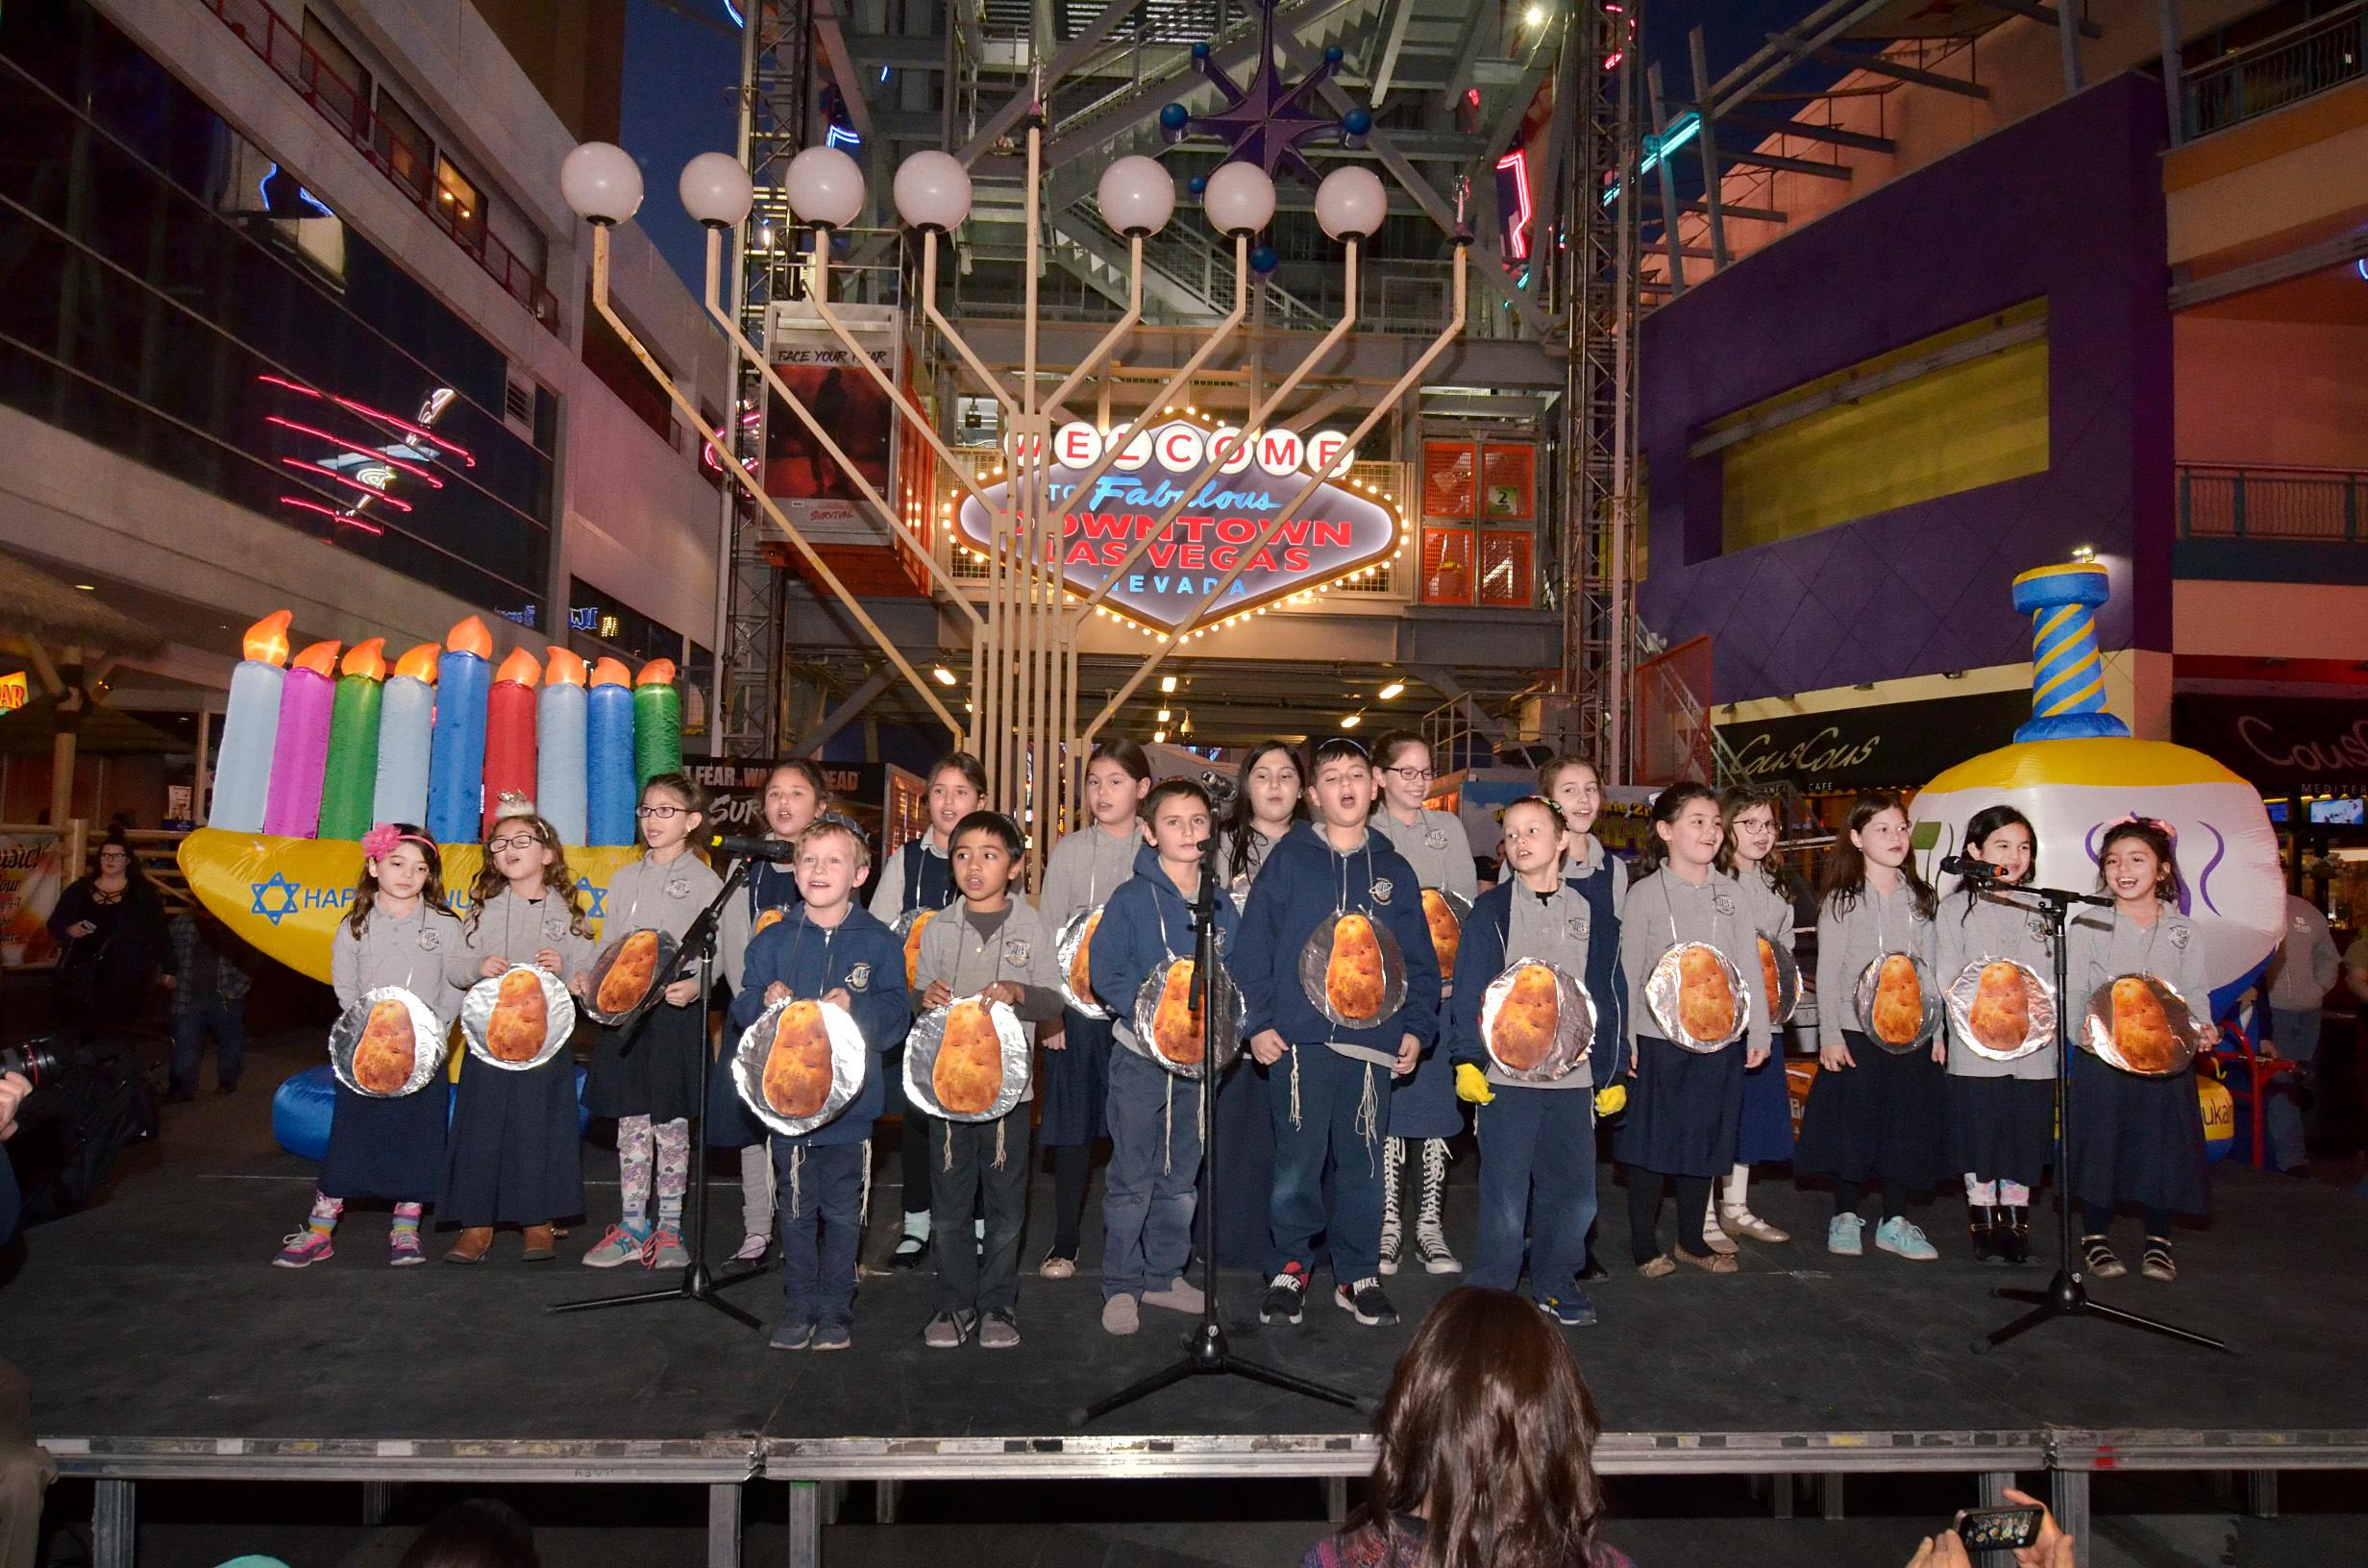 The Desert Torah Academy Childrens Choir performs during a menorah lighting ceremony. Rabbi Shea Harlig, of the Chabad Jewish Center of Southern Nevada, Las Vegas Mayor Carolyn Goodman, Jonathan Jossel, CEO of the Plaza hotel-casino, and Patrick Hughes, President and CEO of Fremont Street Experience, were on hand for the first night of Hanukkah which was marked with the lighting of a 20-foot Grand Menorah on Fremont Street in downtown Las Vegas on Tuesday, Dec. 12, 2017. CREDIT: Bill Hughes/Las Vegas News Bureau